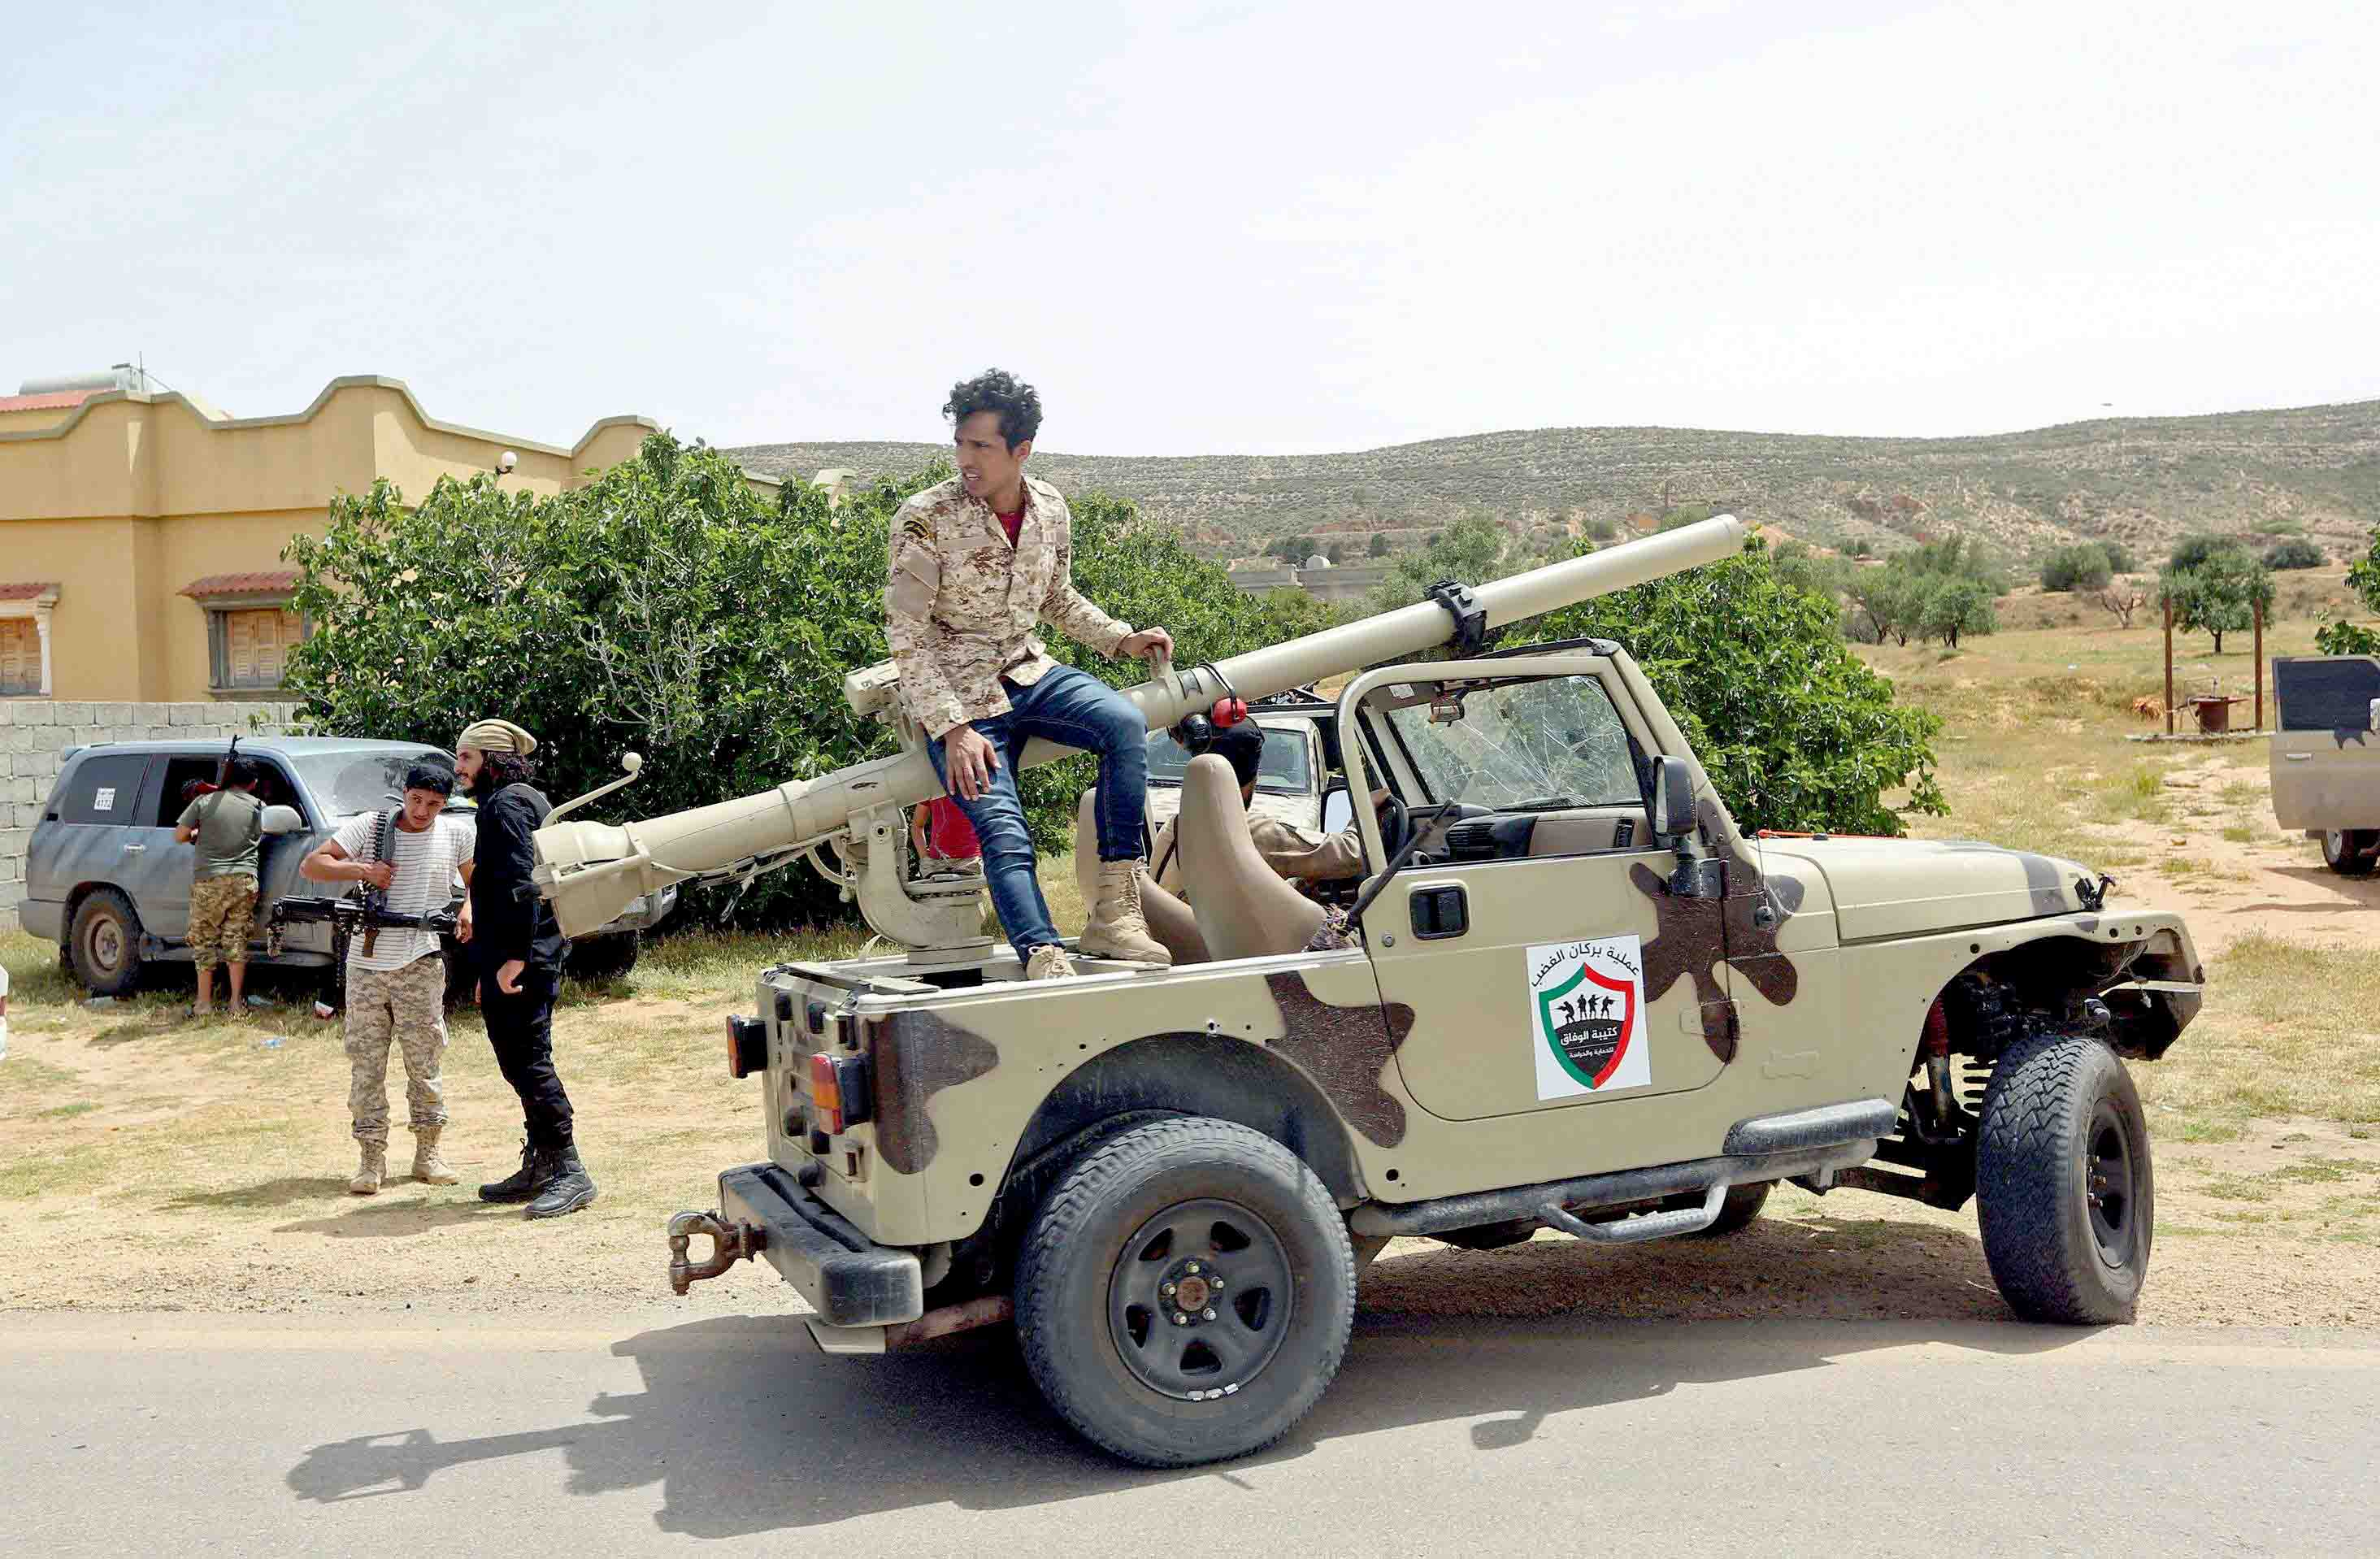 Fighters with Libya's Government of National Accord (GNA) gather at a position near the town of Garabulli, some 70km east of the capital Tripoli. (AFP)